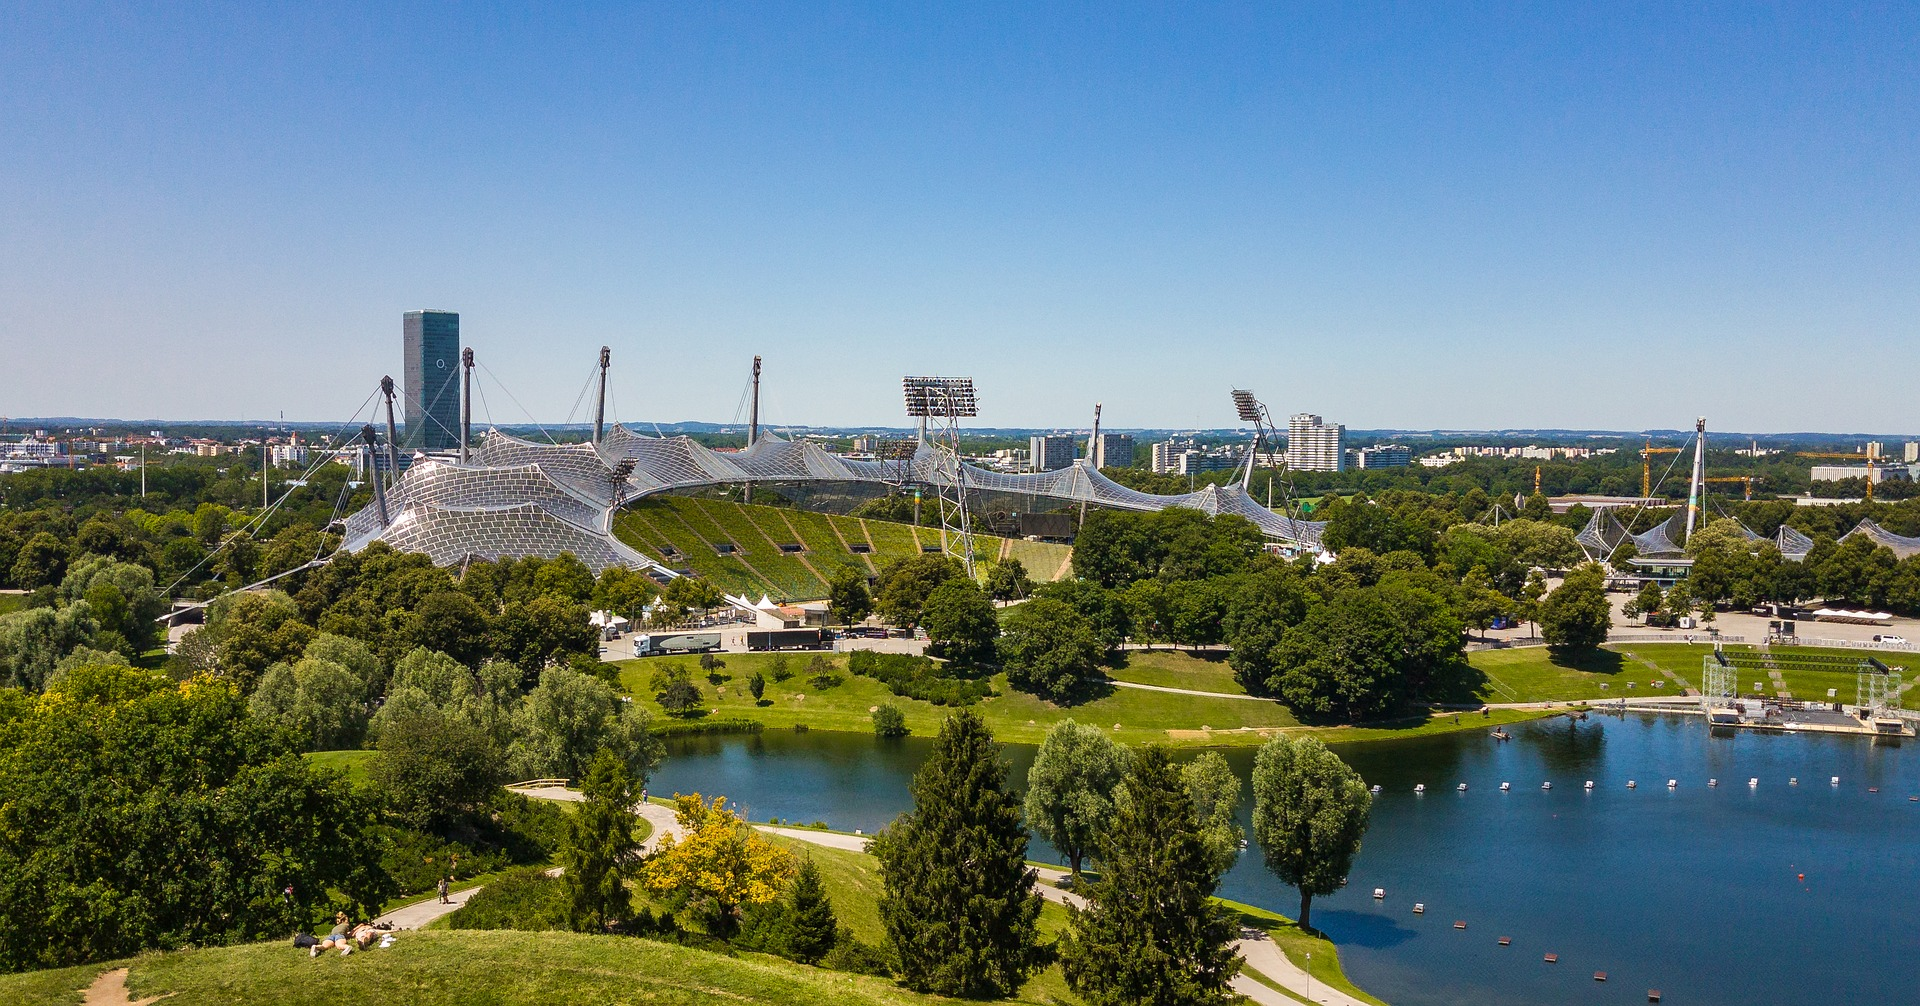 A view of the Olympiapark in Munich on a sunny day, with a deep blue lake in front, lots of green trees and blue sky.